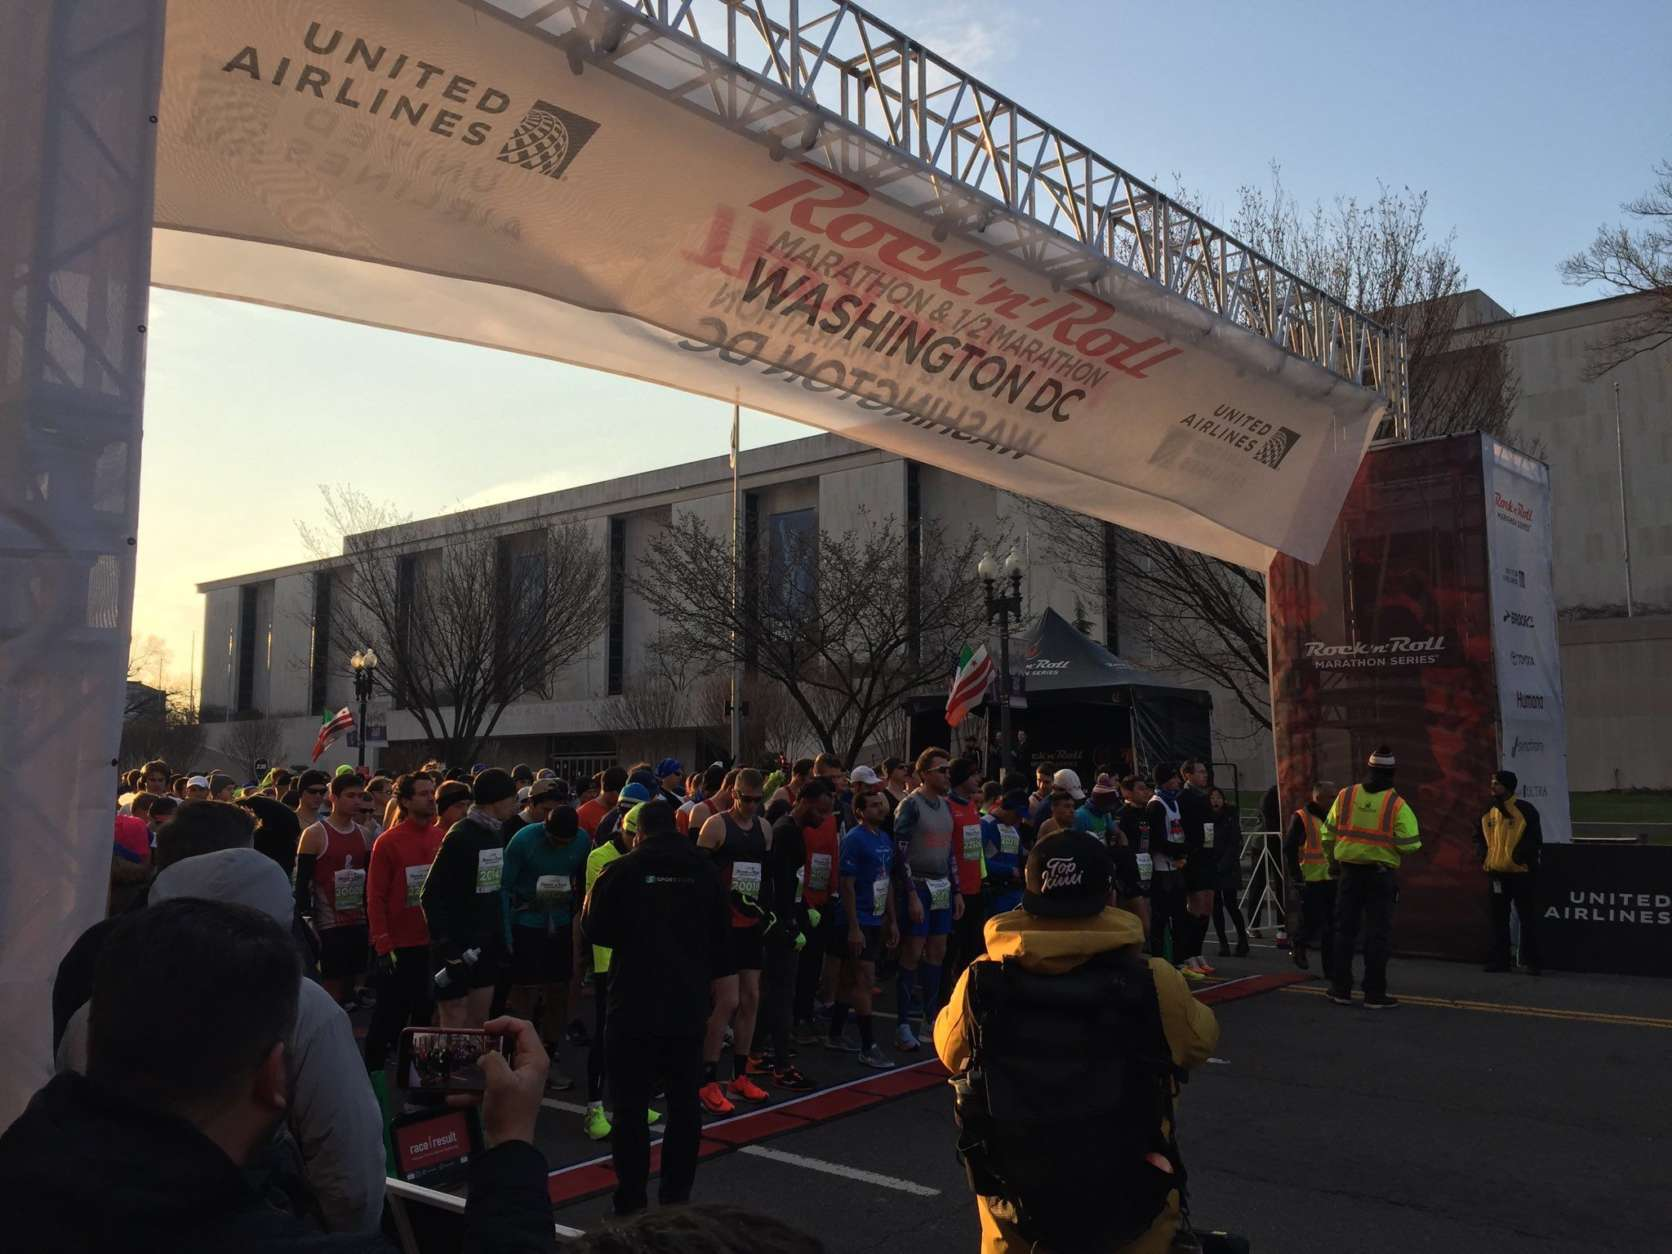 Runners gather at the starting line for the 2018 Rock 'n' Roll marathon in Washington. (WTOP/John Domen)